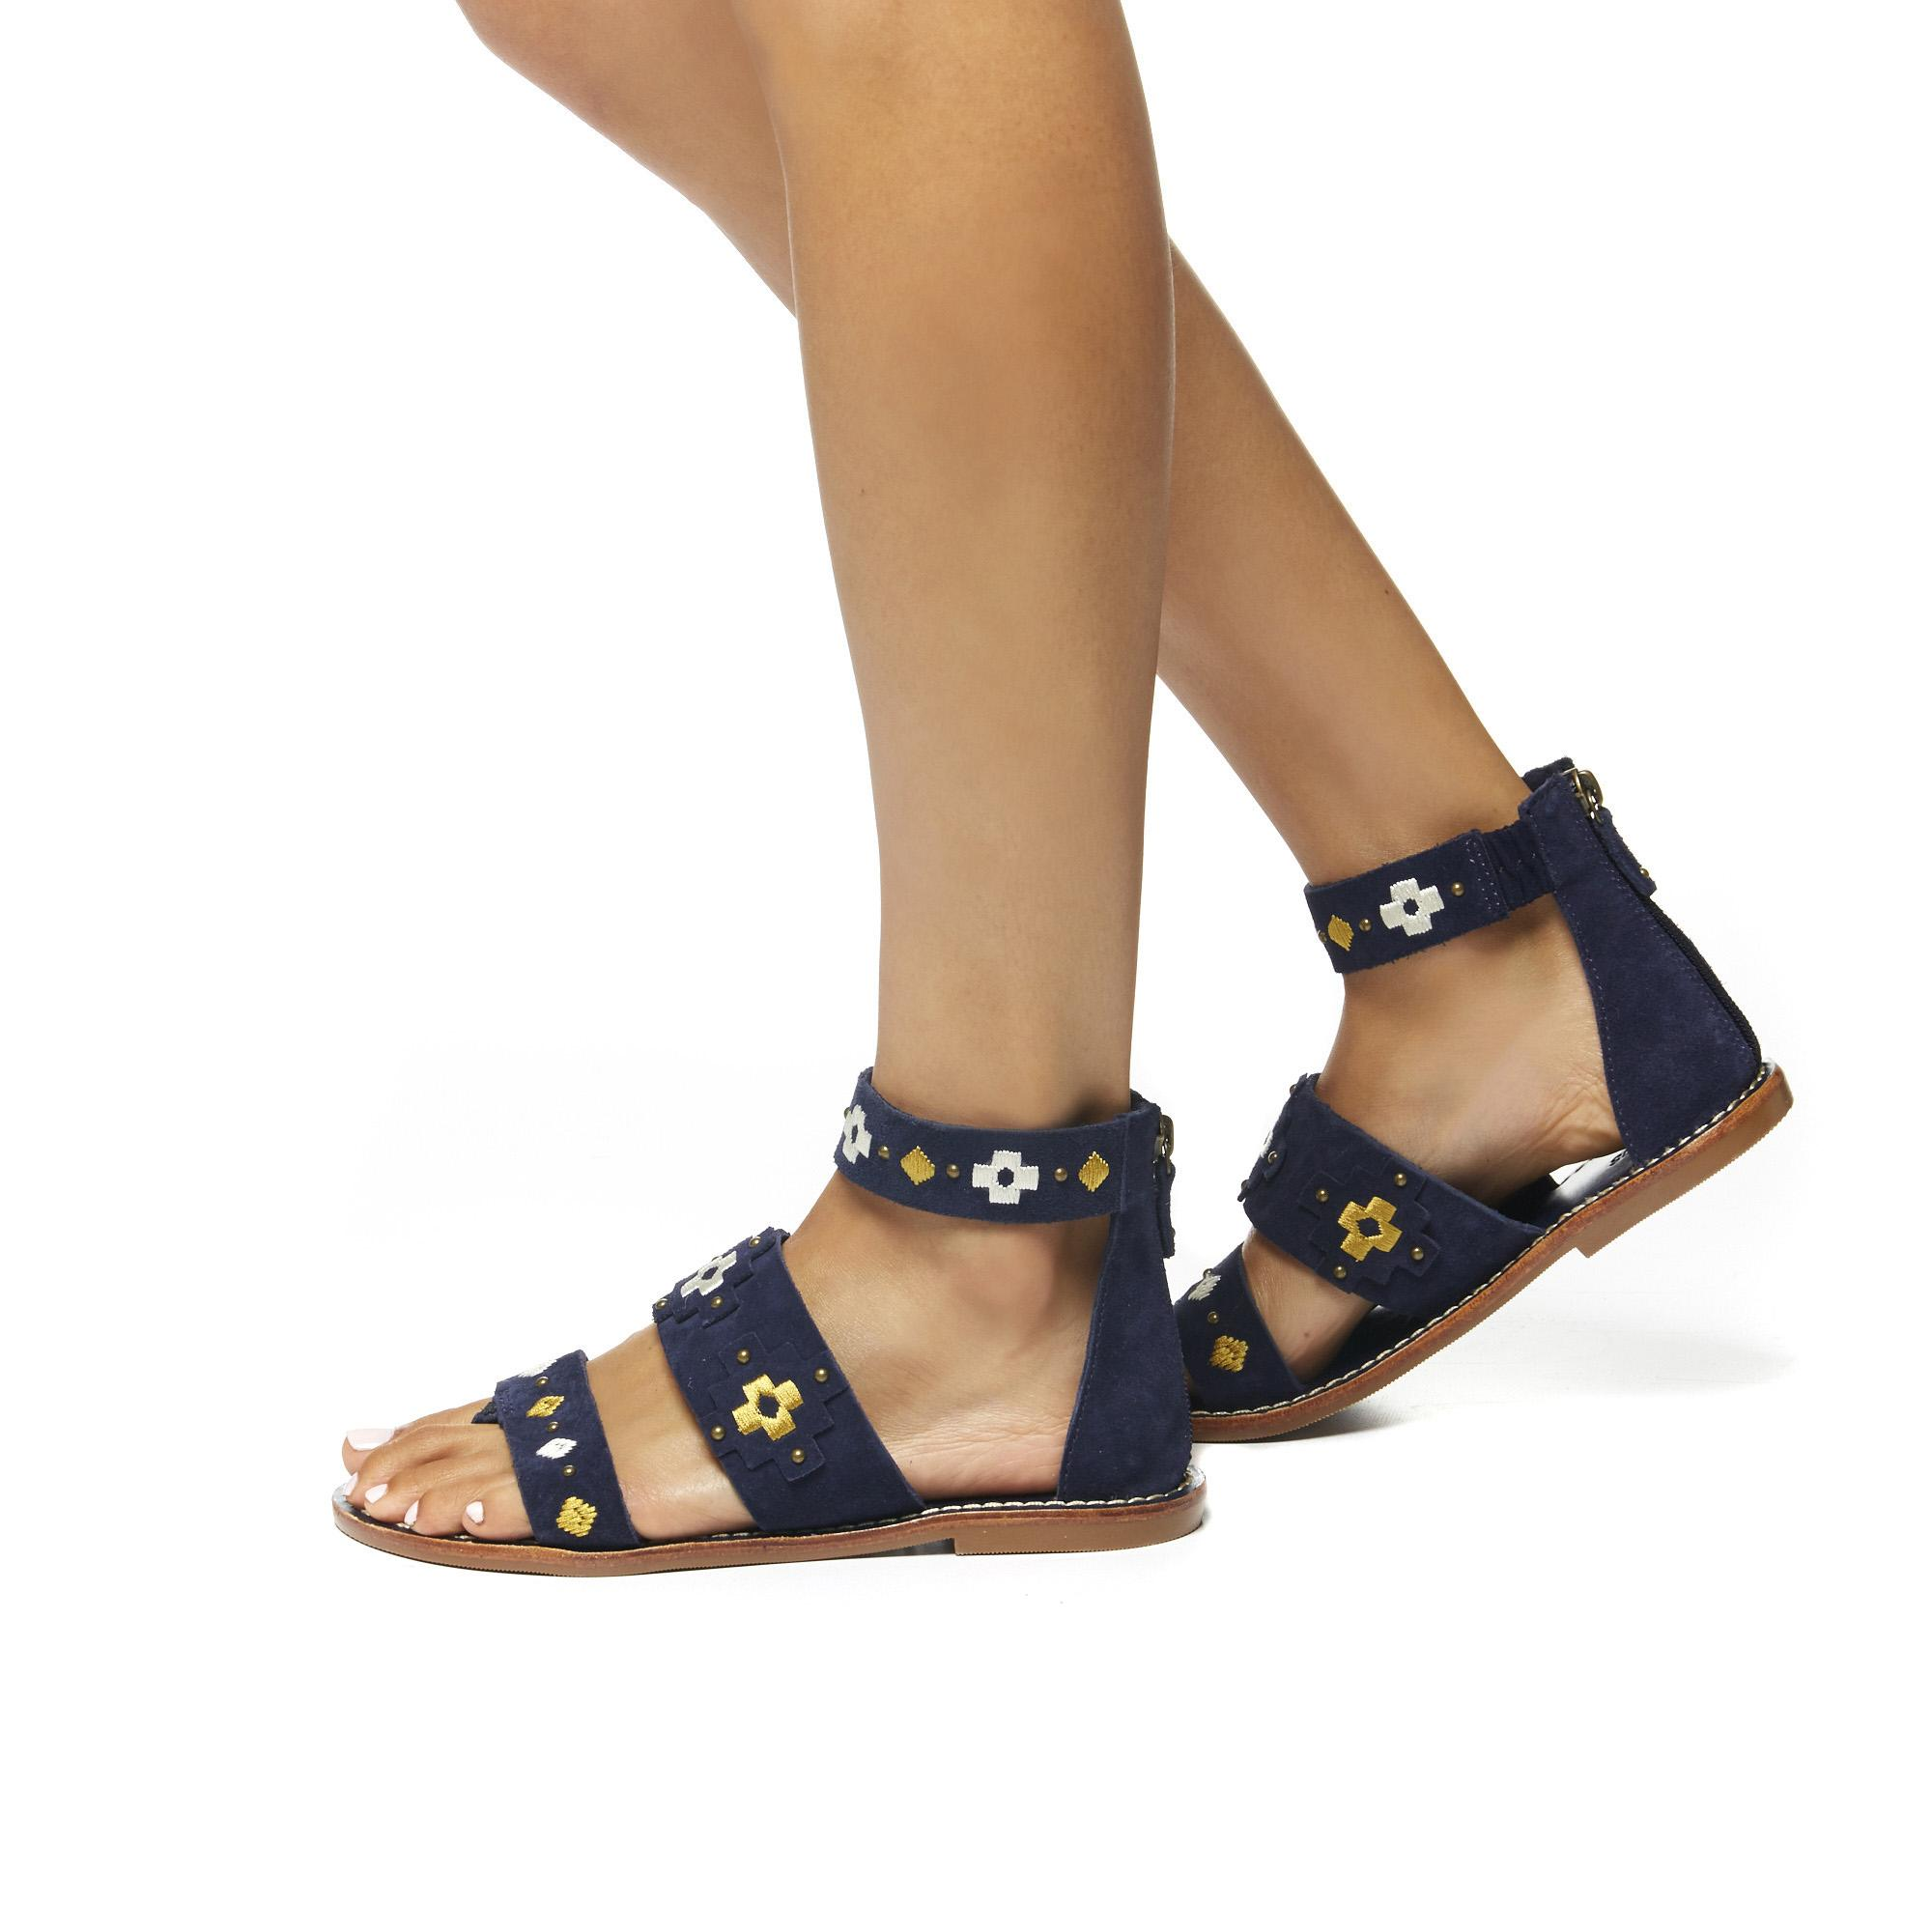 2eefa8f1581 Soludos Embroidered Three Banded Sandal in Blue - Lyst